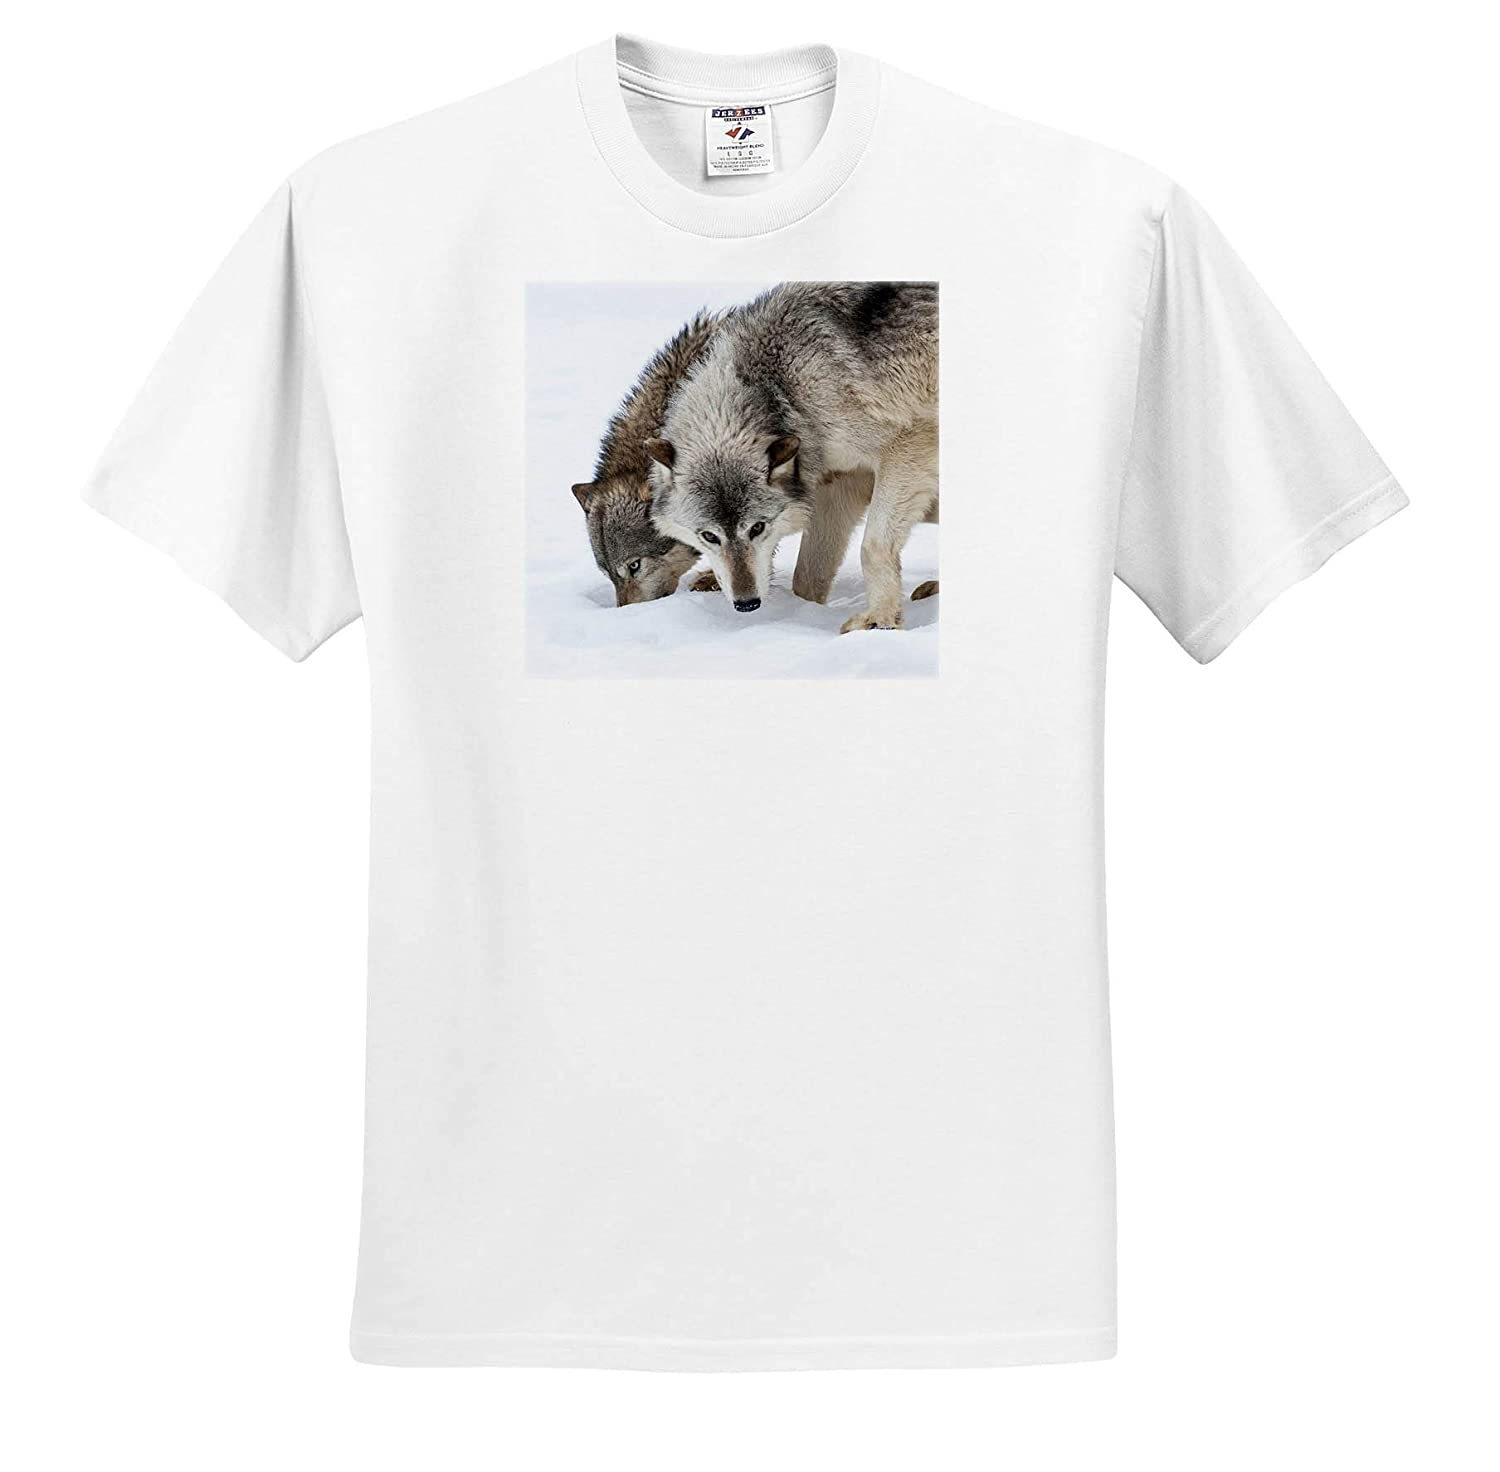 Wolves ts/_314875 Wolves Digging in The Snow Sandstone USA Minnesota Adult T-Shirt XL 3dRose Danita Delimont